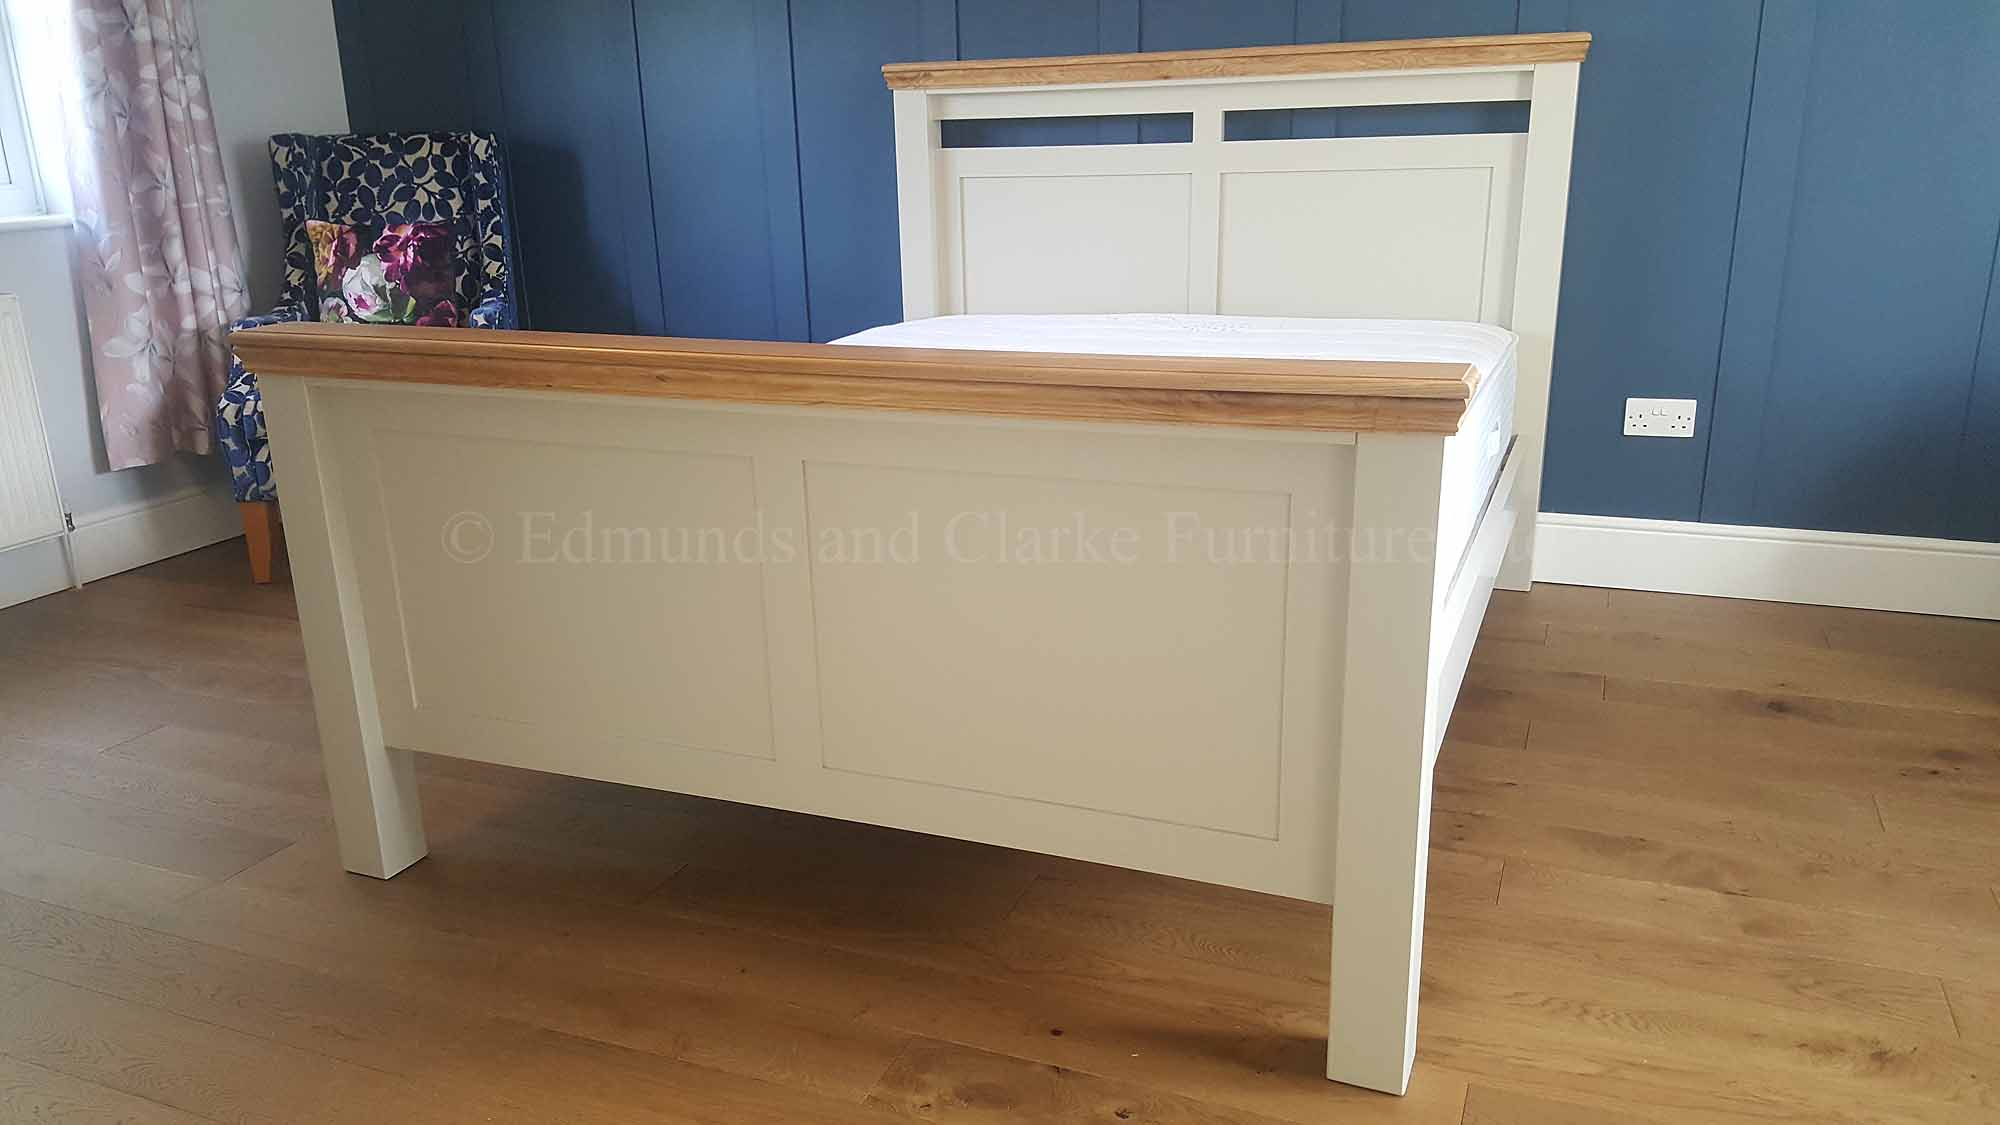 kingsize panelled high end bed with oak cappings